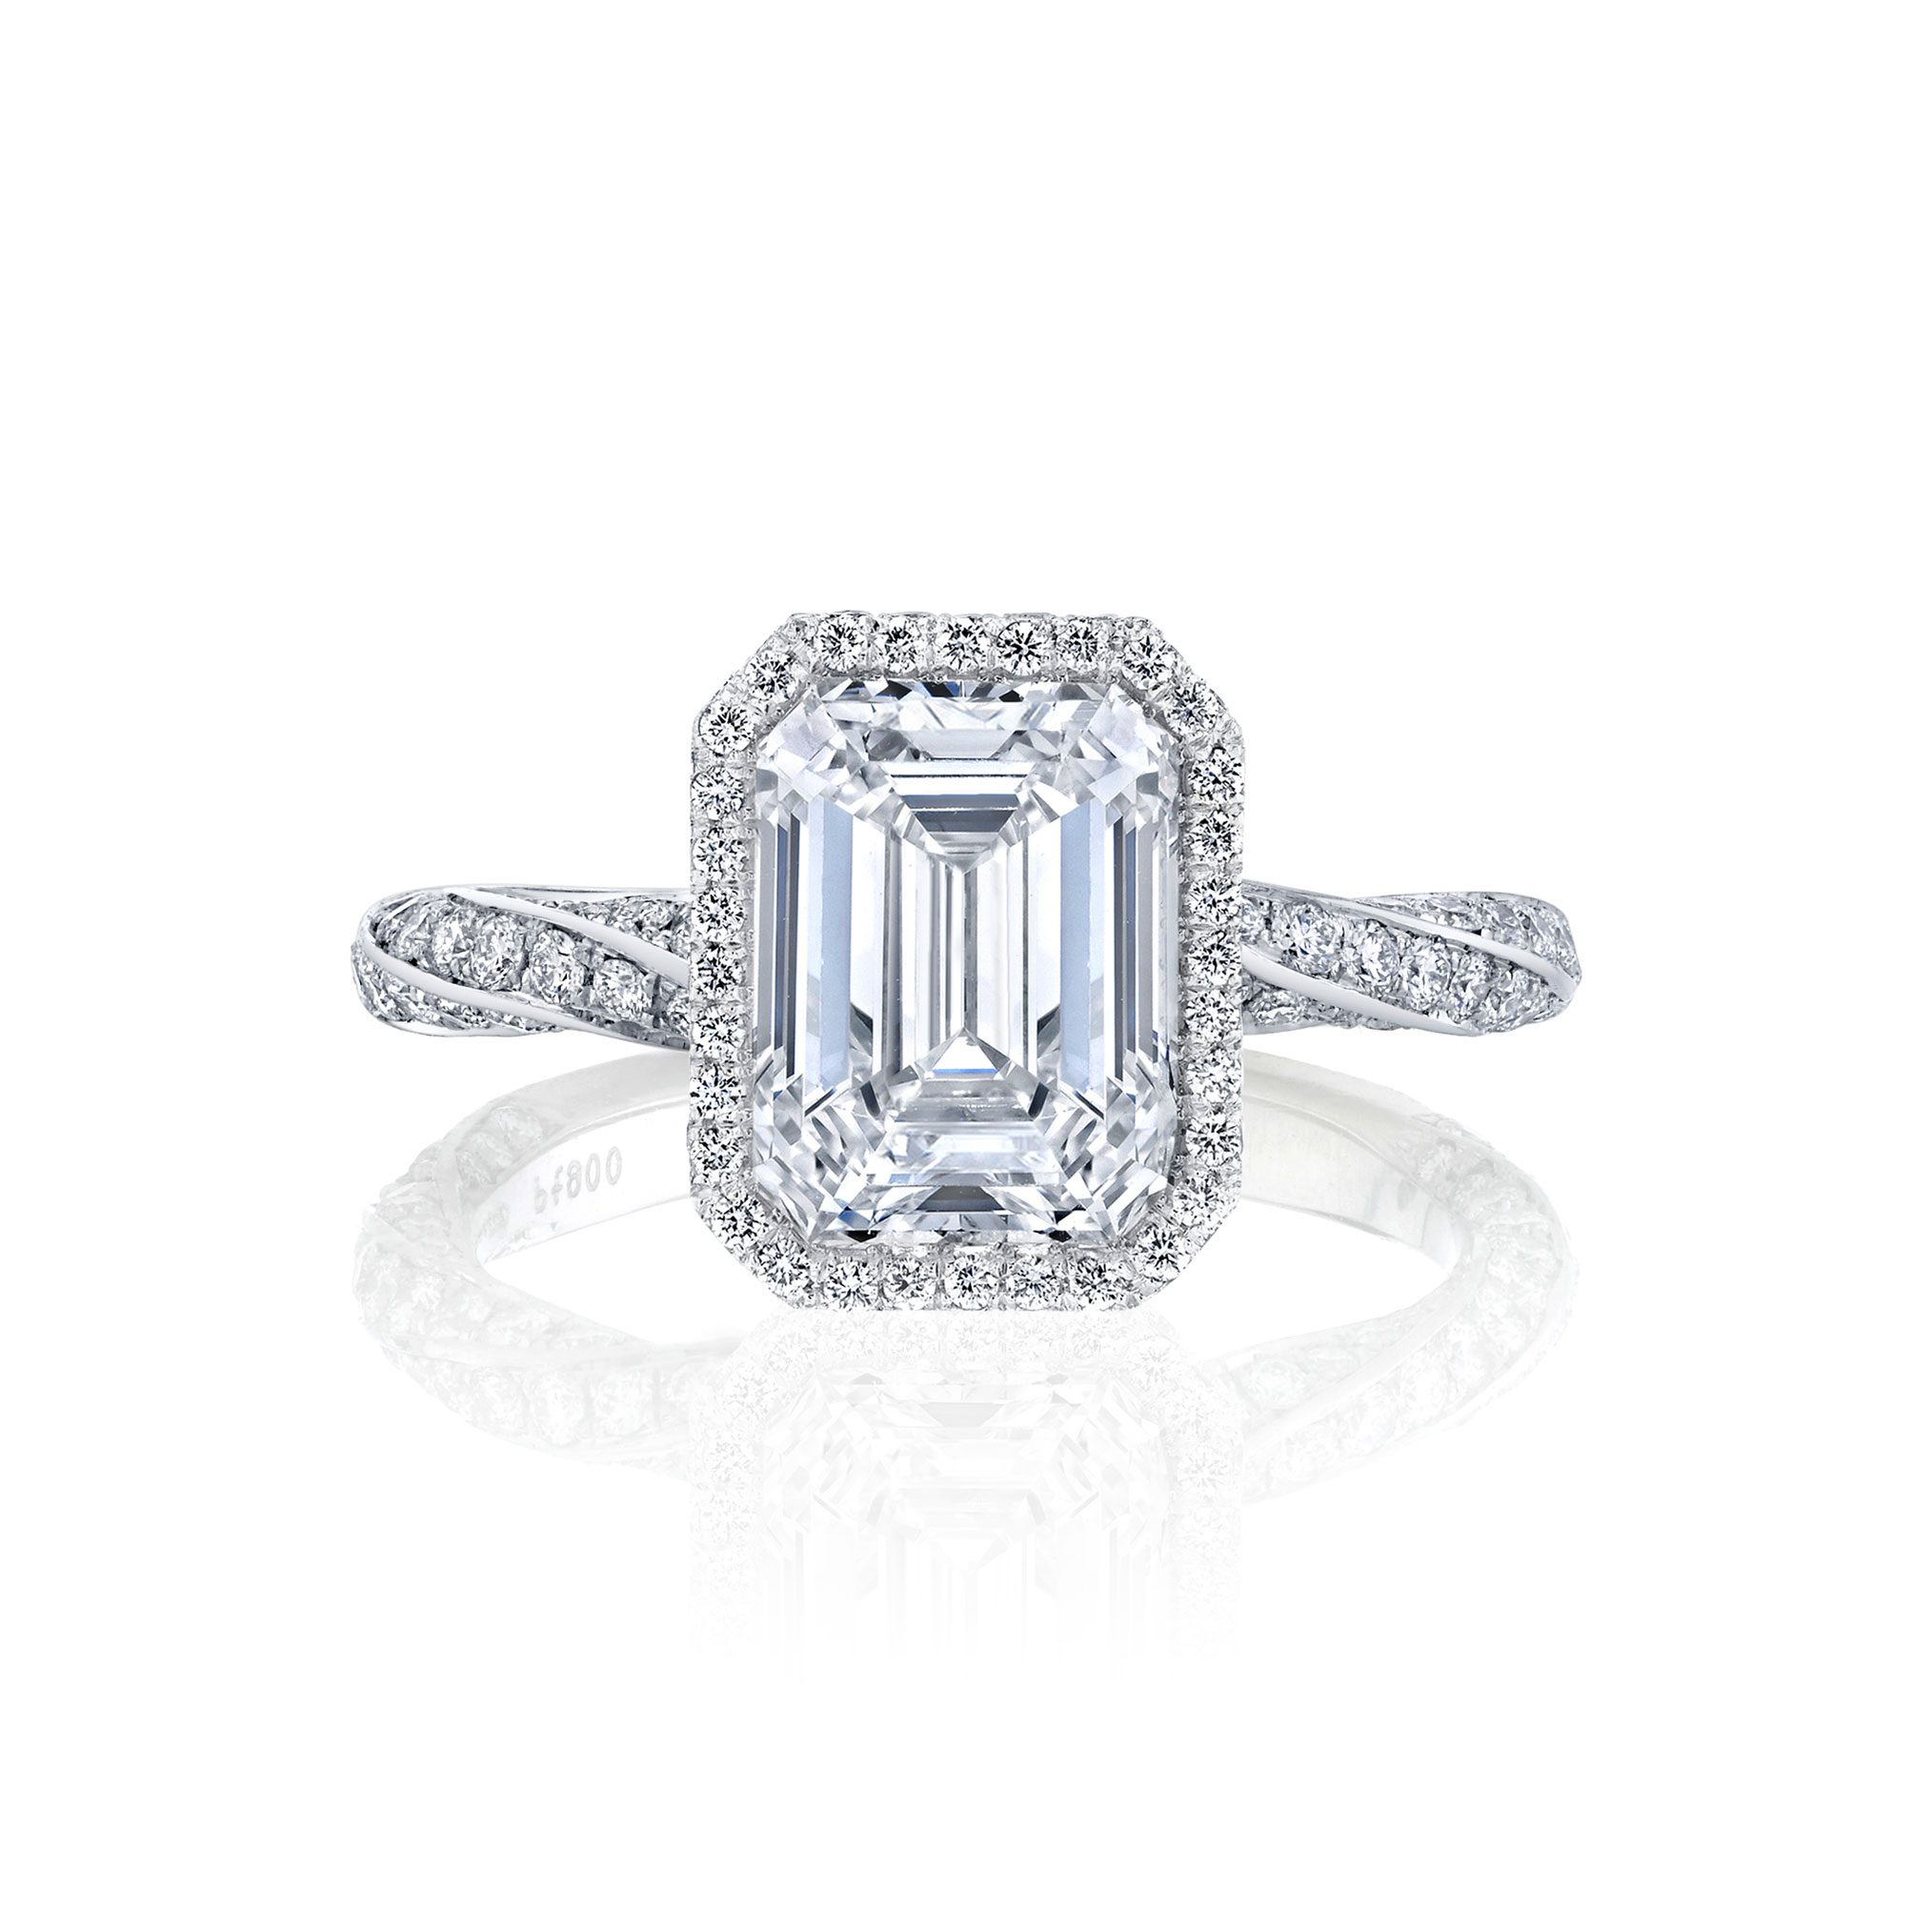 Camille Seamless Halo® Engagement Ring Emerald Cut with 18k white gold twisted pavé band